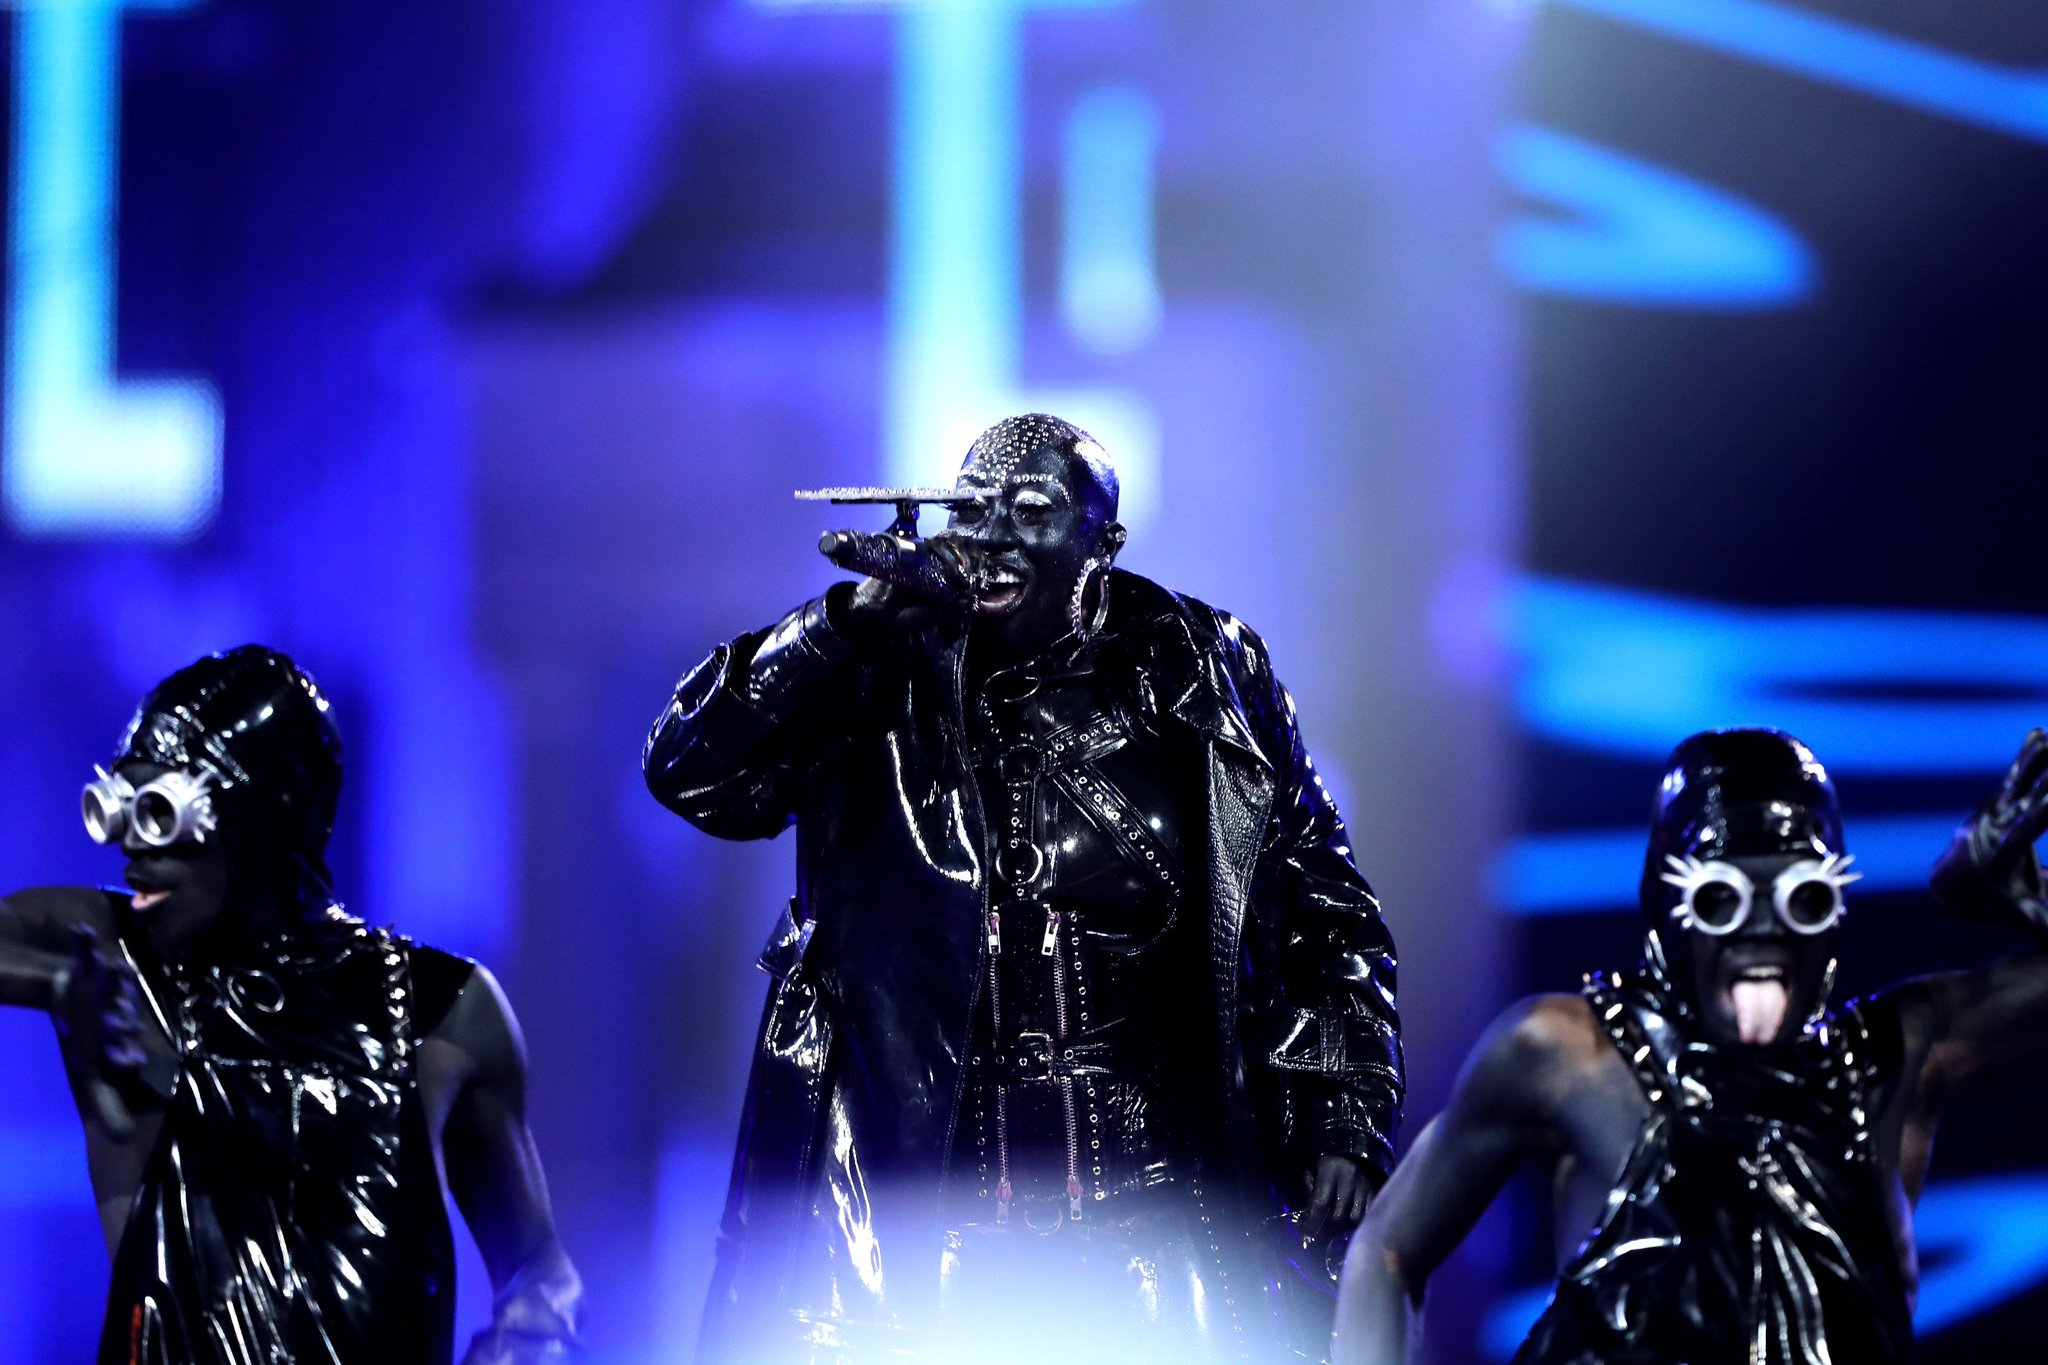 No one does it like @MissyElliott #HipHopHonors https://t.co/HPxbzNqsaE https://t.co/TTlve4l70O